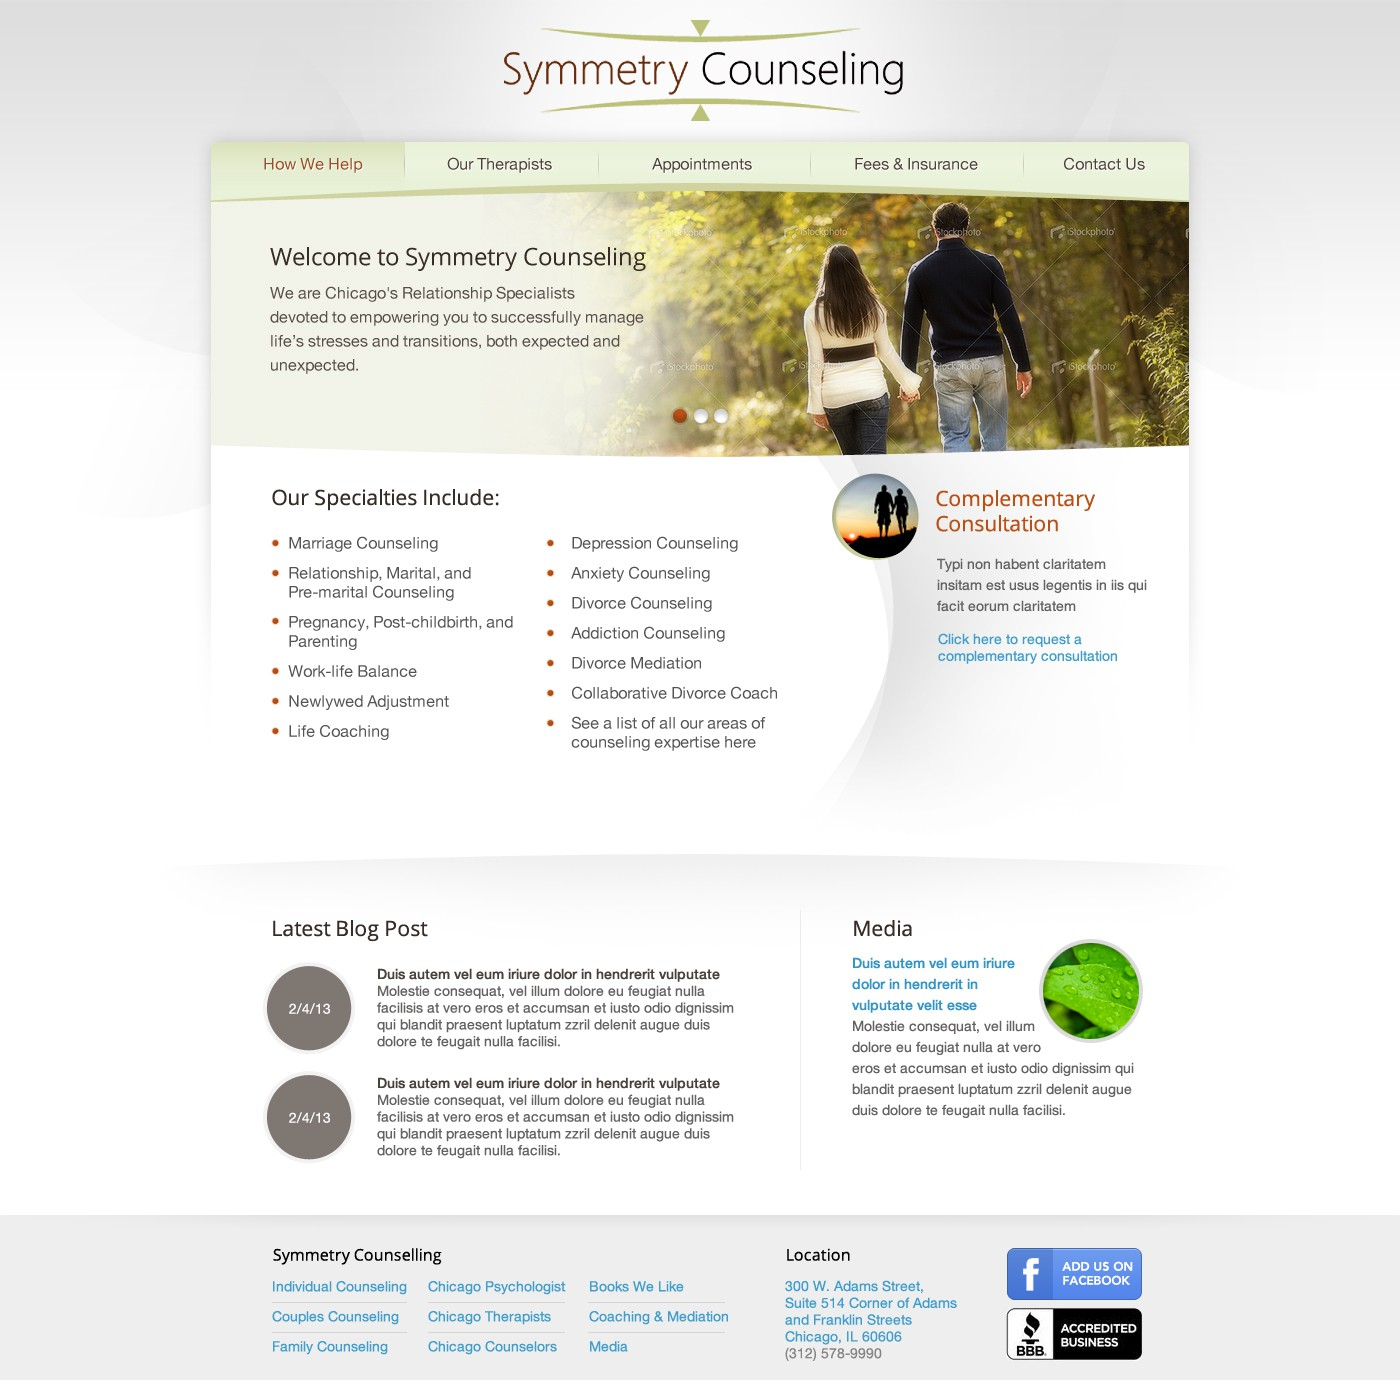 Help Symmetry Counseling with a new website design